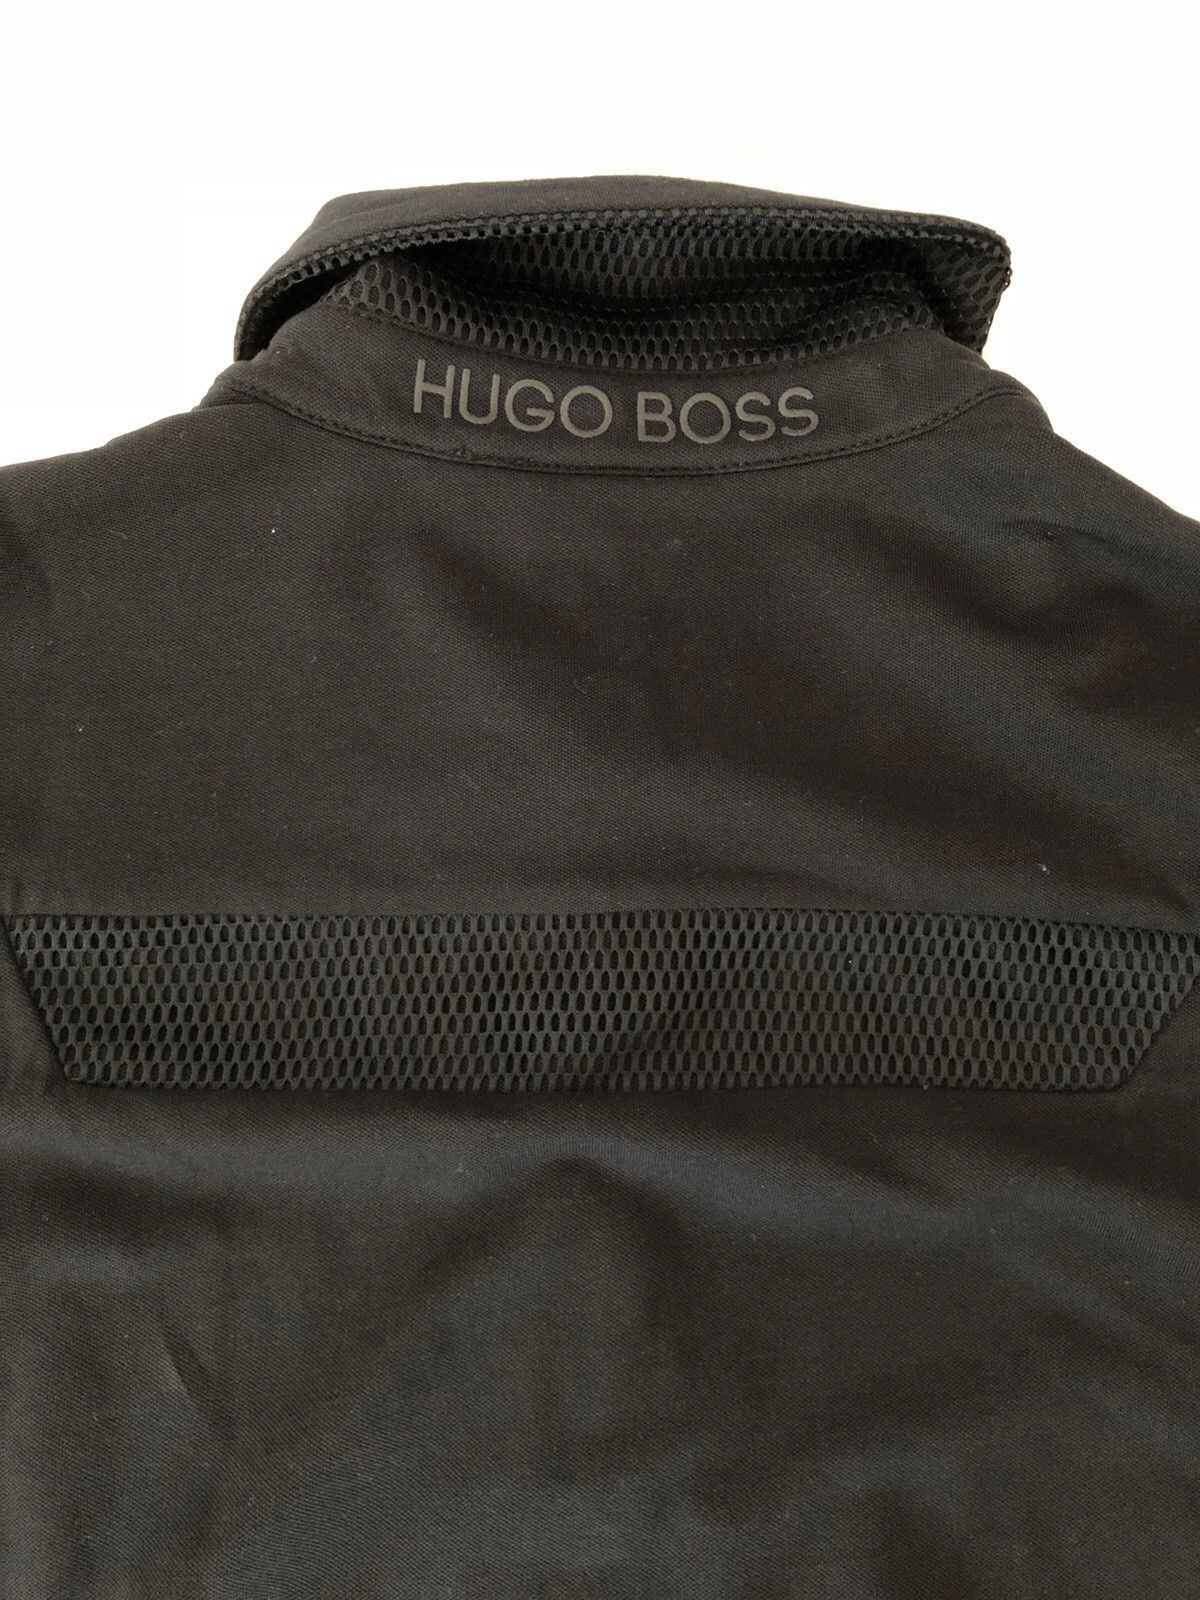 NWT BOSS Hugo Boss Green 'Pleesy 2' Long Sleeve Polo Slim Fit Shirt  Small - BAYSUPERSTORE